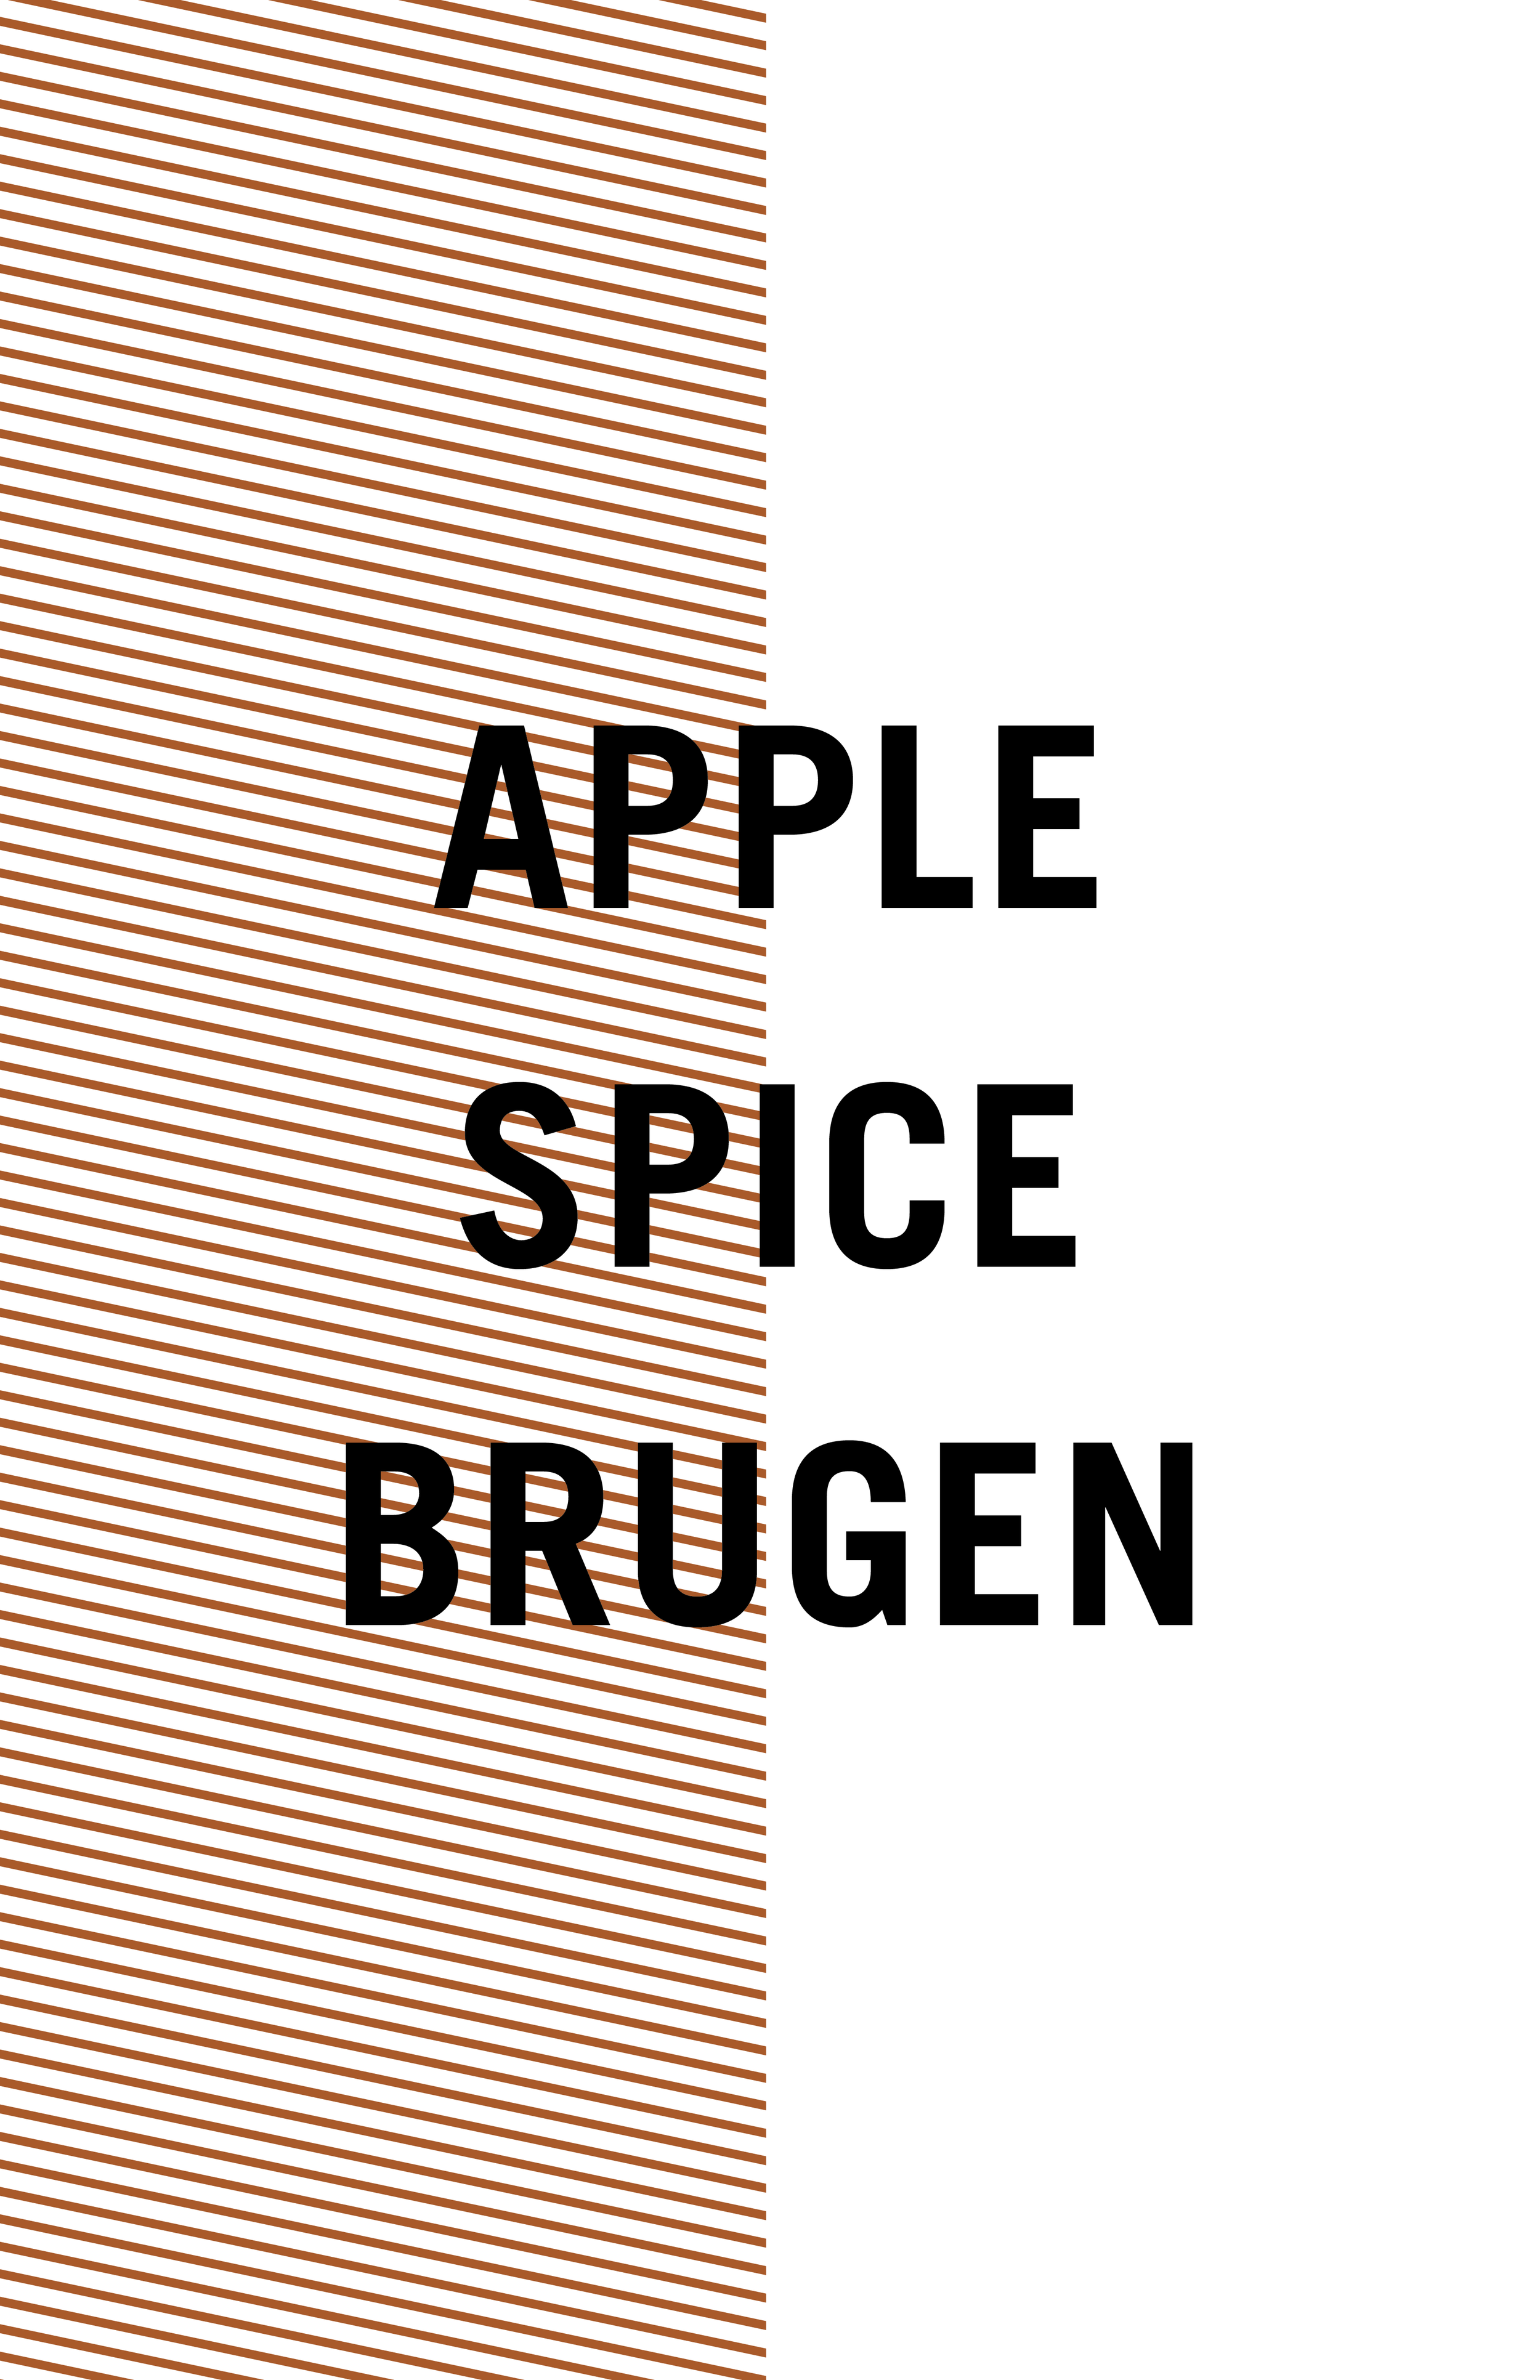 AppleSpiceBrown-03.png